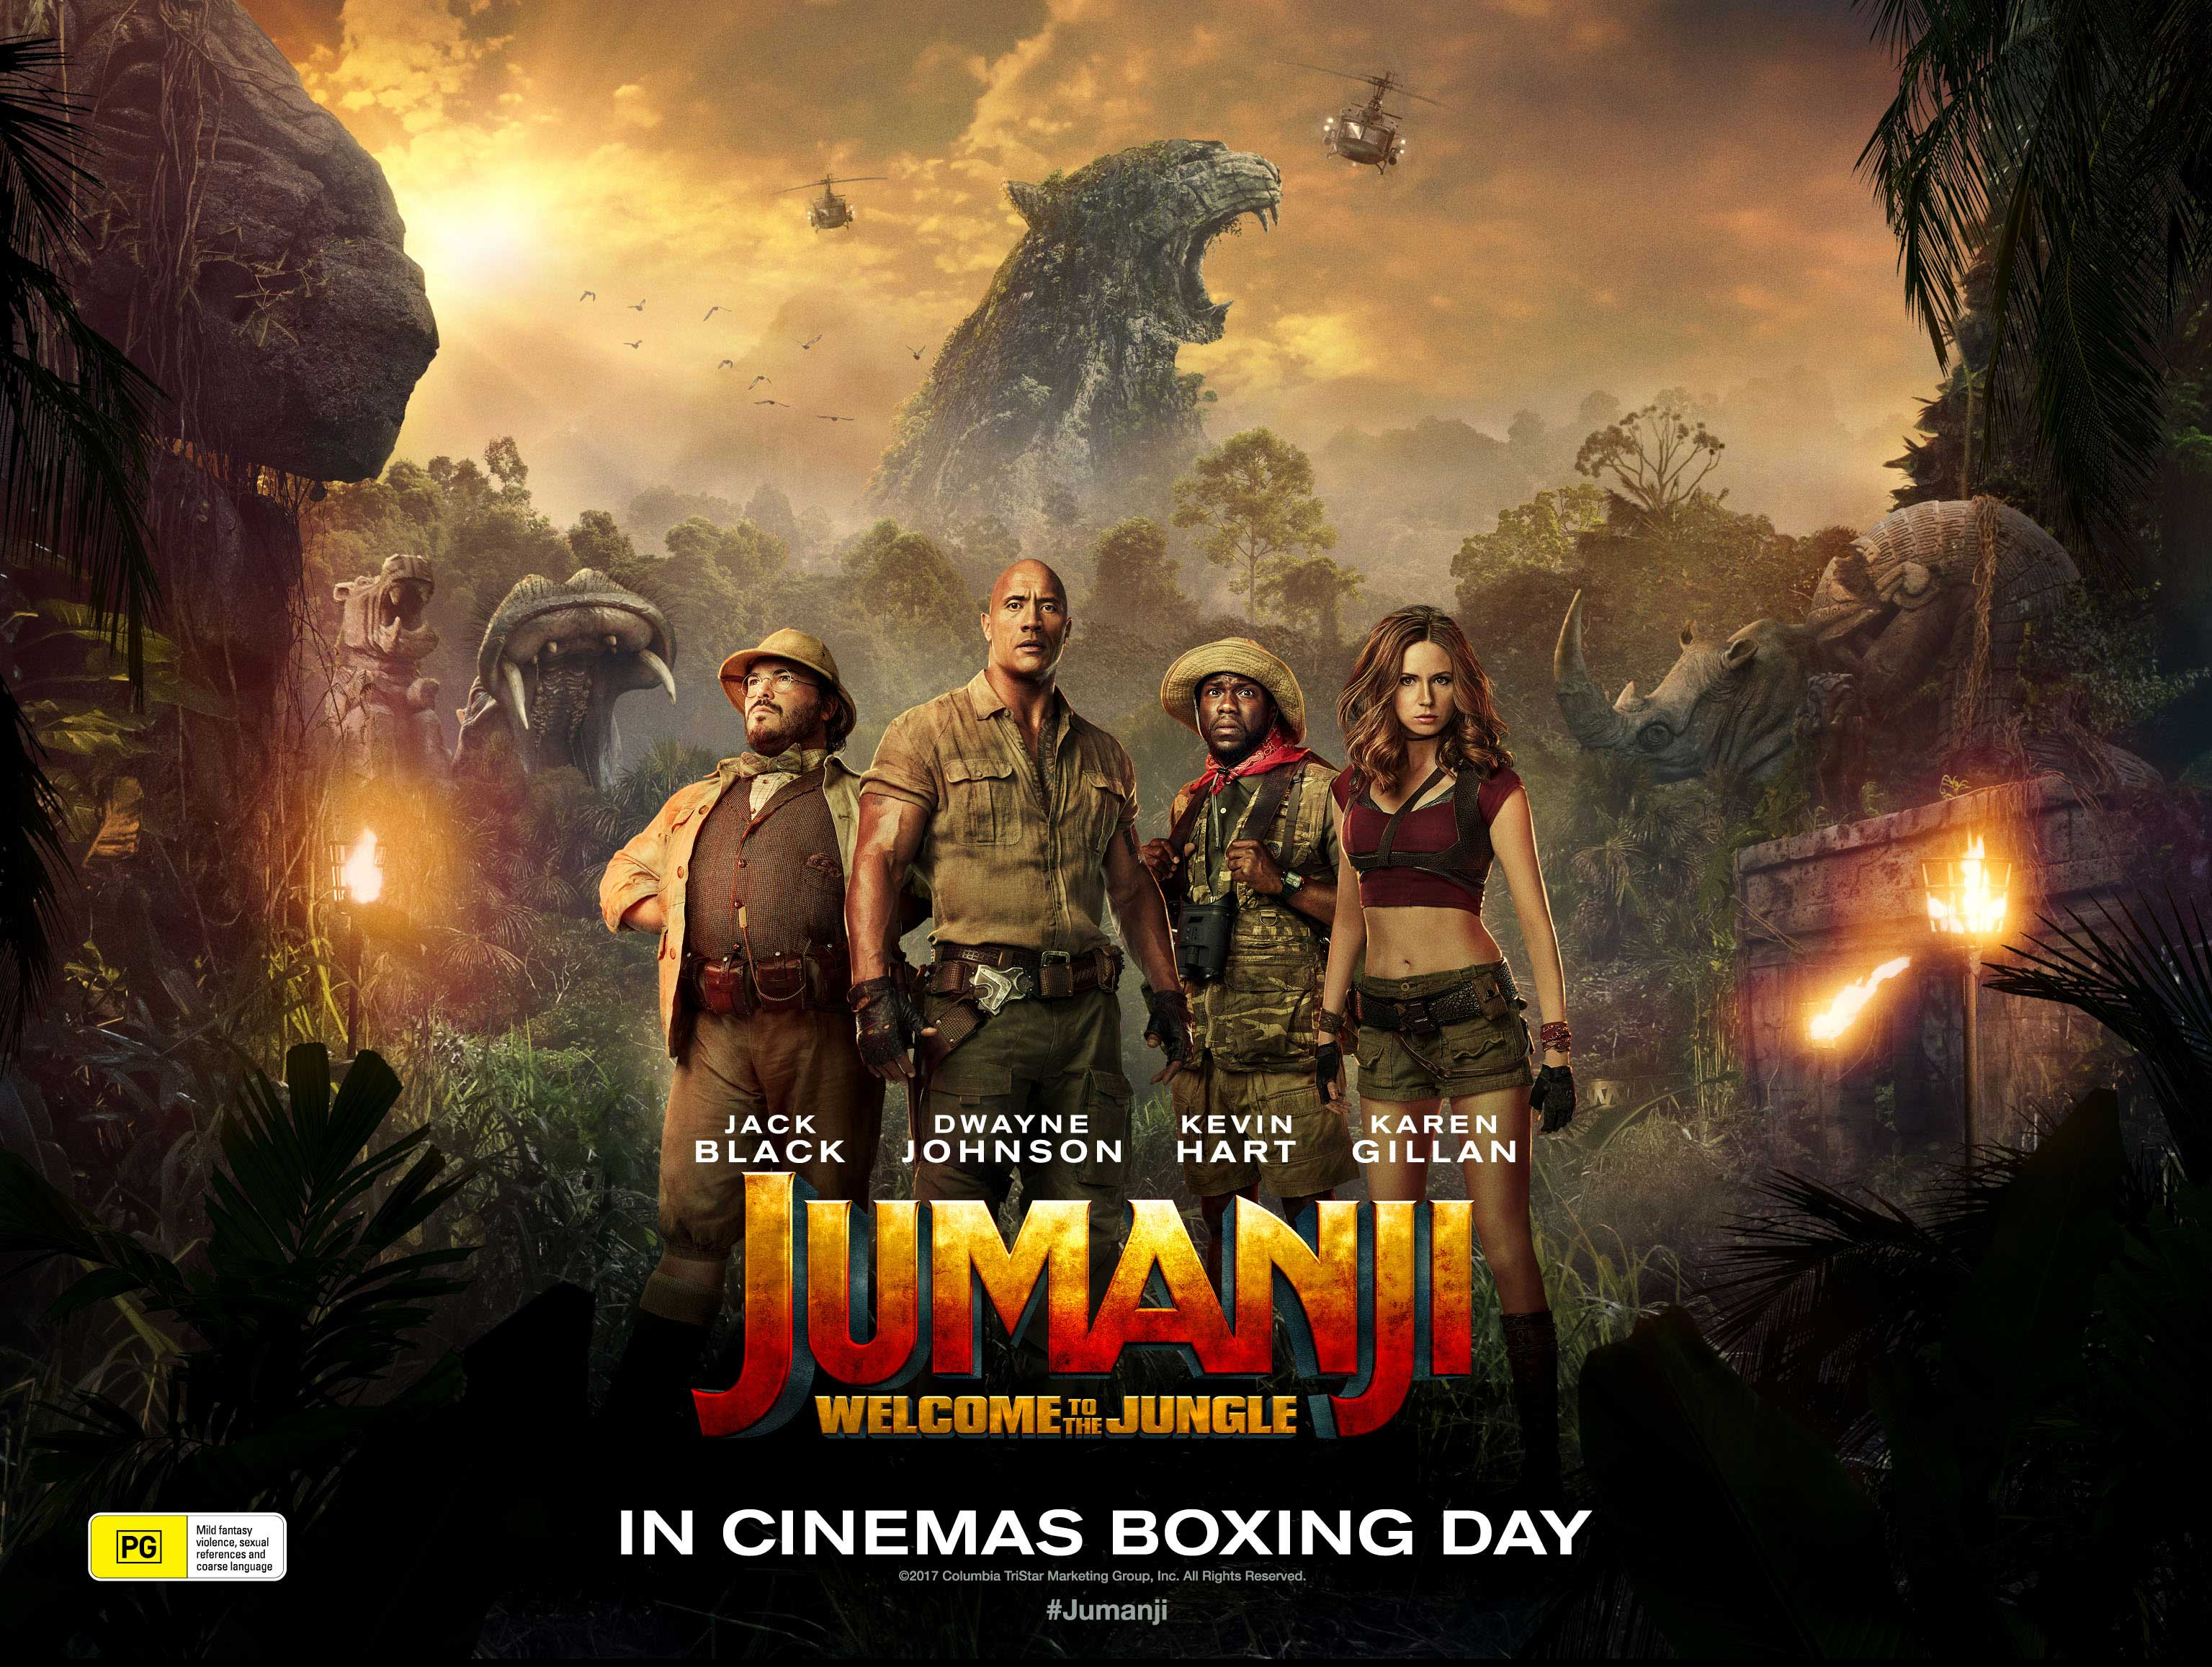 Jumanji_Launch_PP_Quad_Date